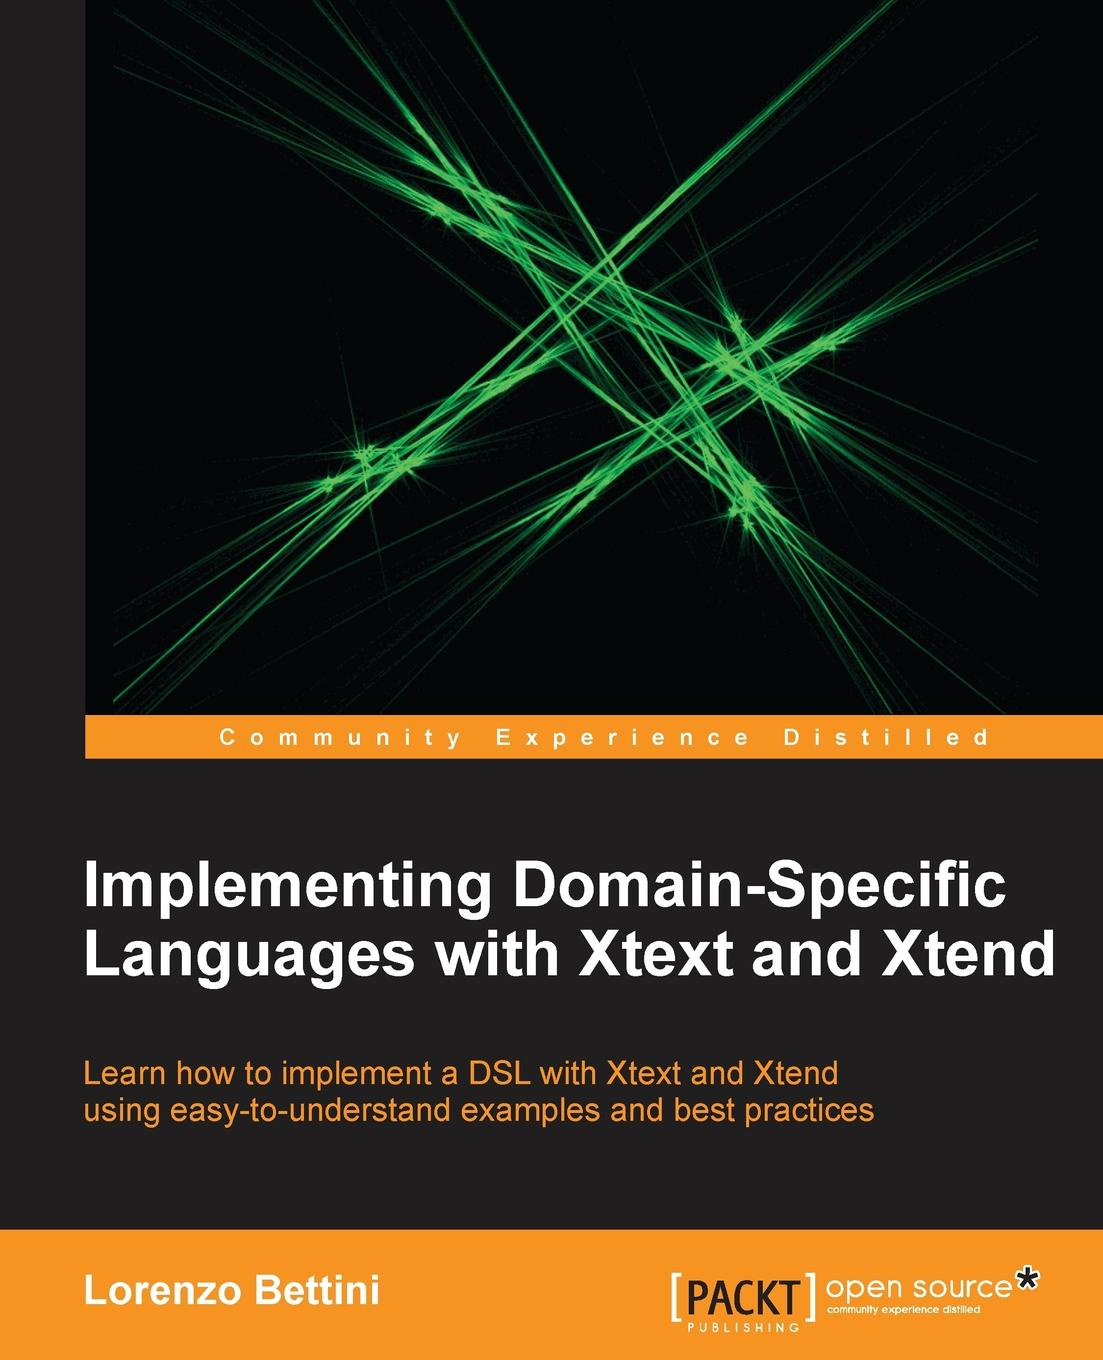 Lorenzo Bettini Implementing Domain-Specific Languages with Xtext and Xtend